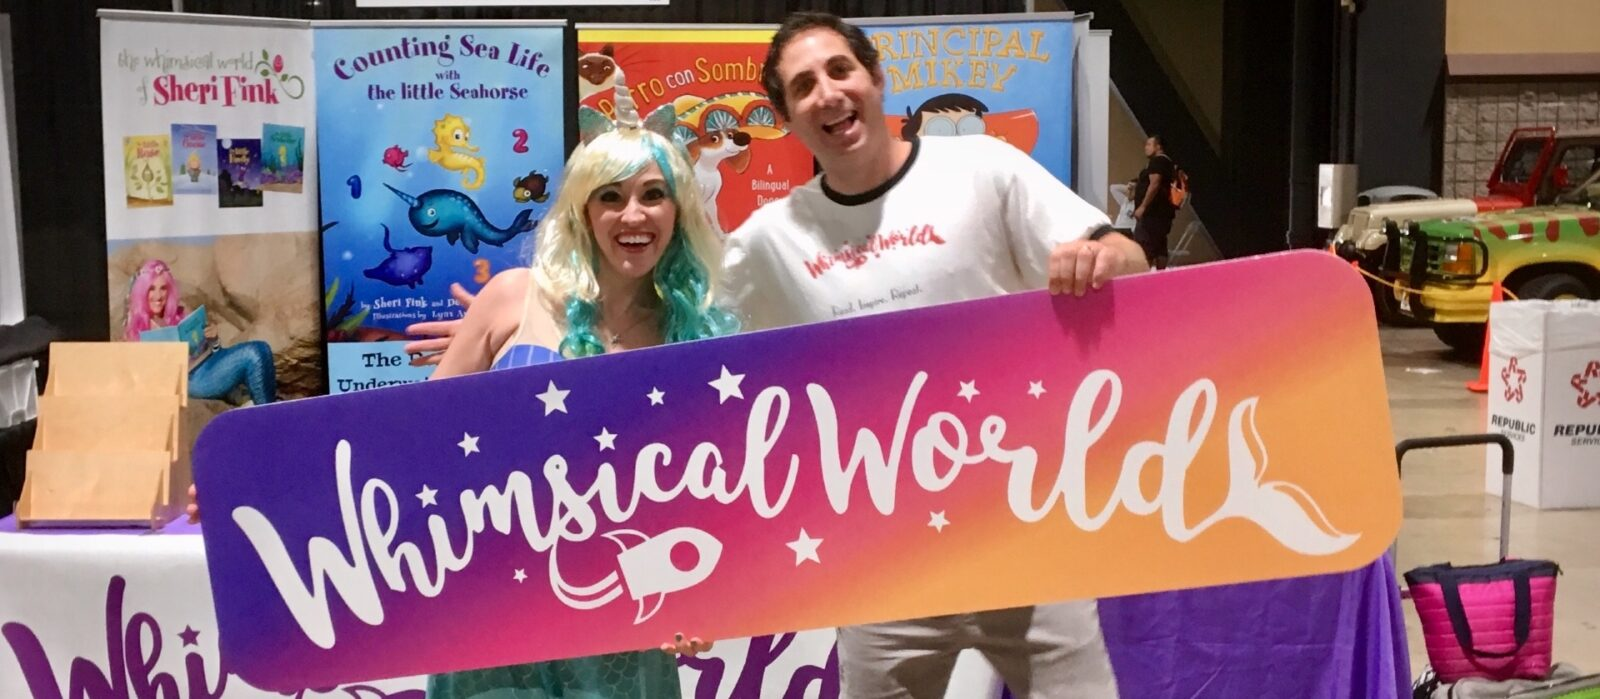 Sheri Fink and Derek Taylor Kent of Whimsical World